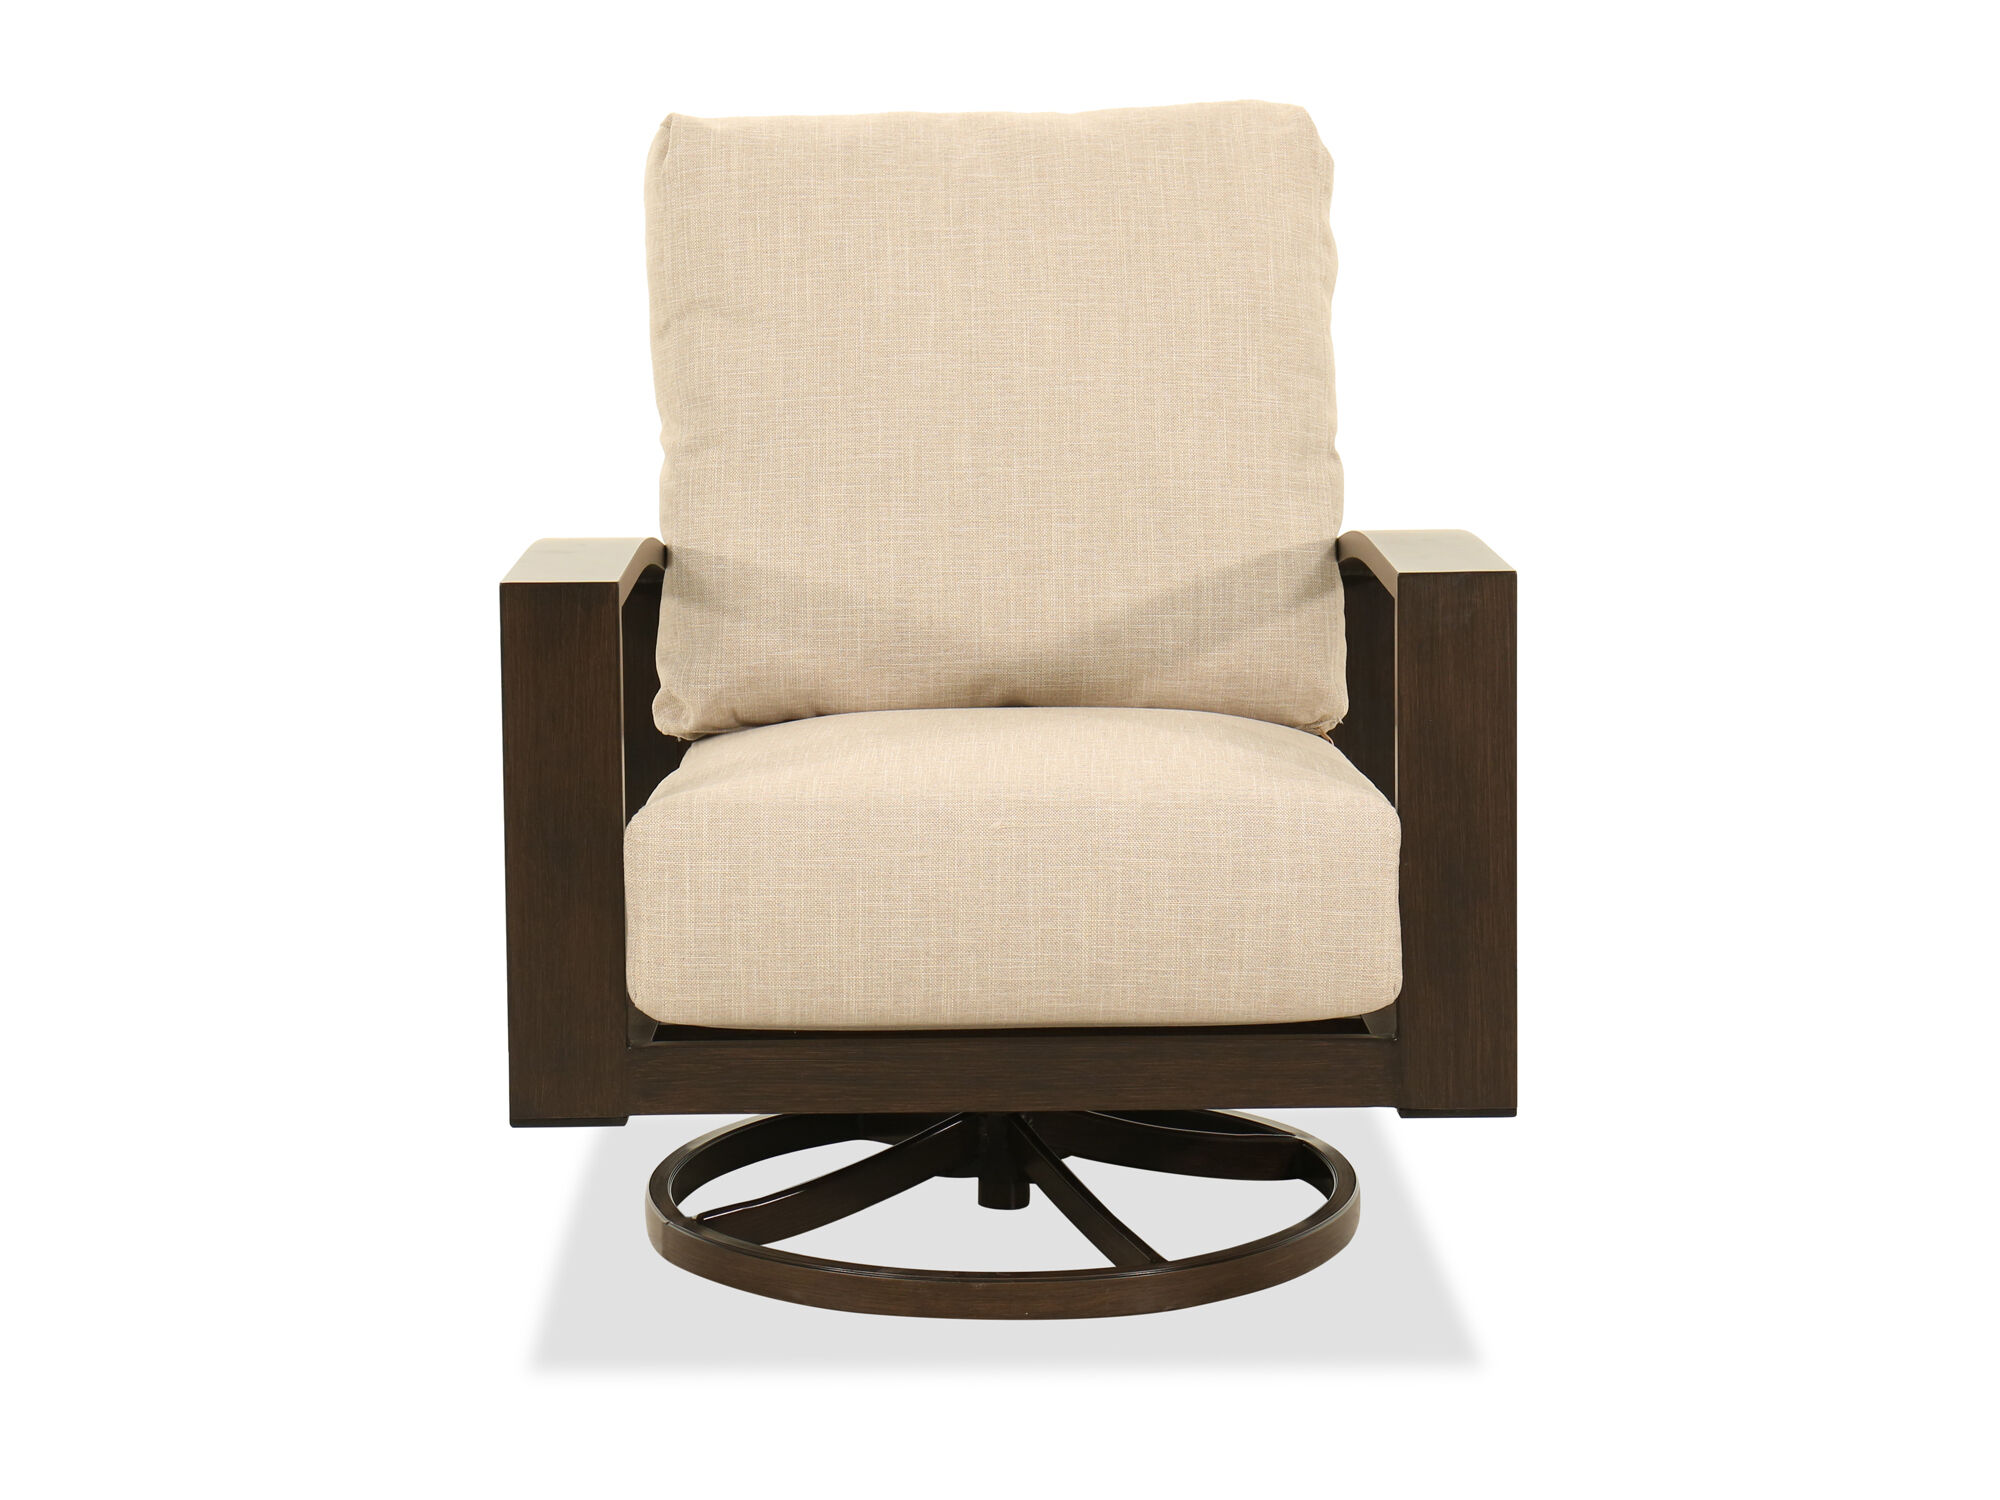 Aluminum Swivel Chair In Beige Mathis Brothers Furniture